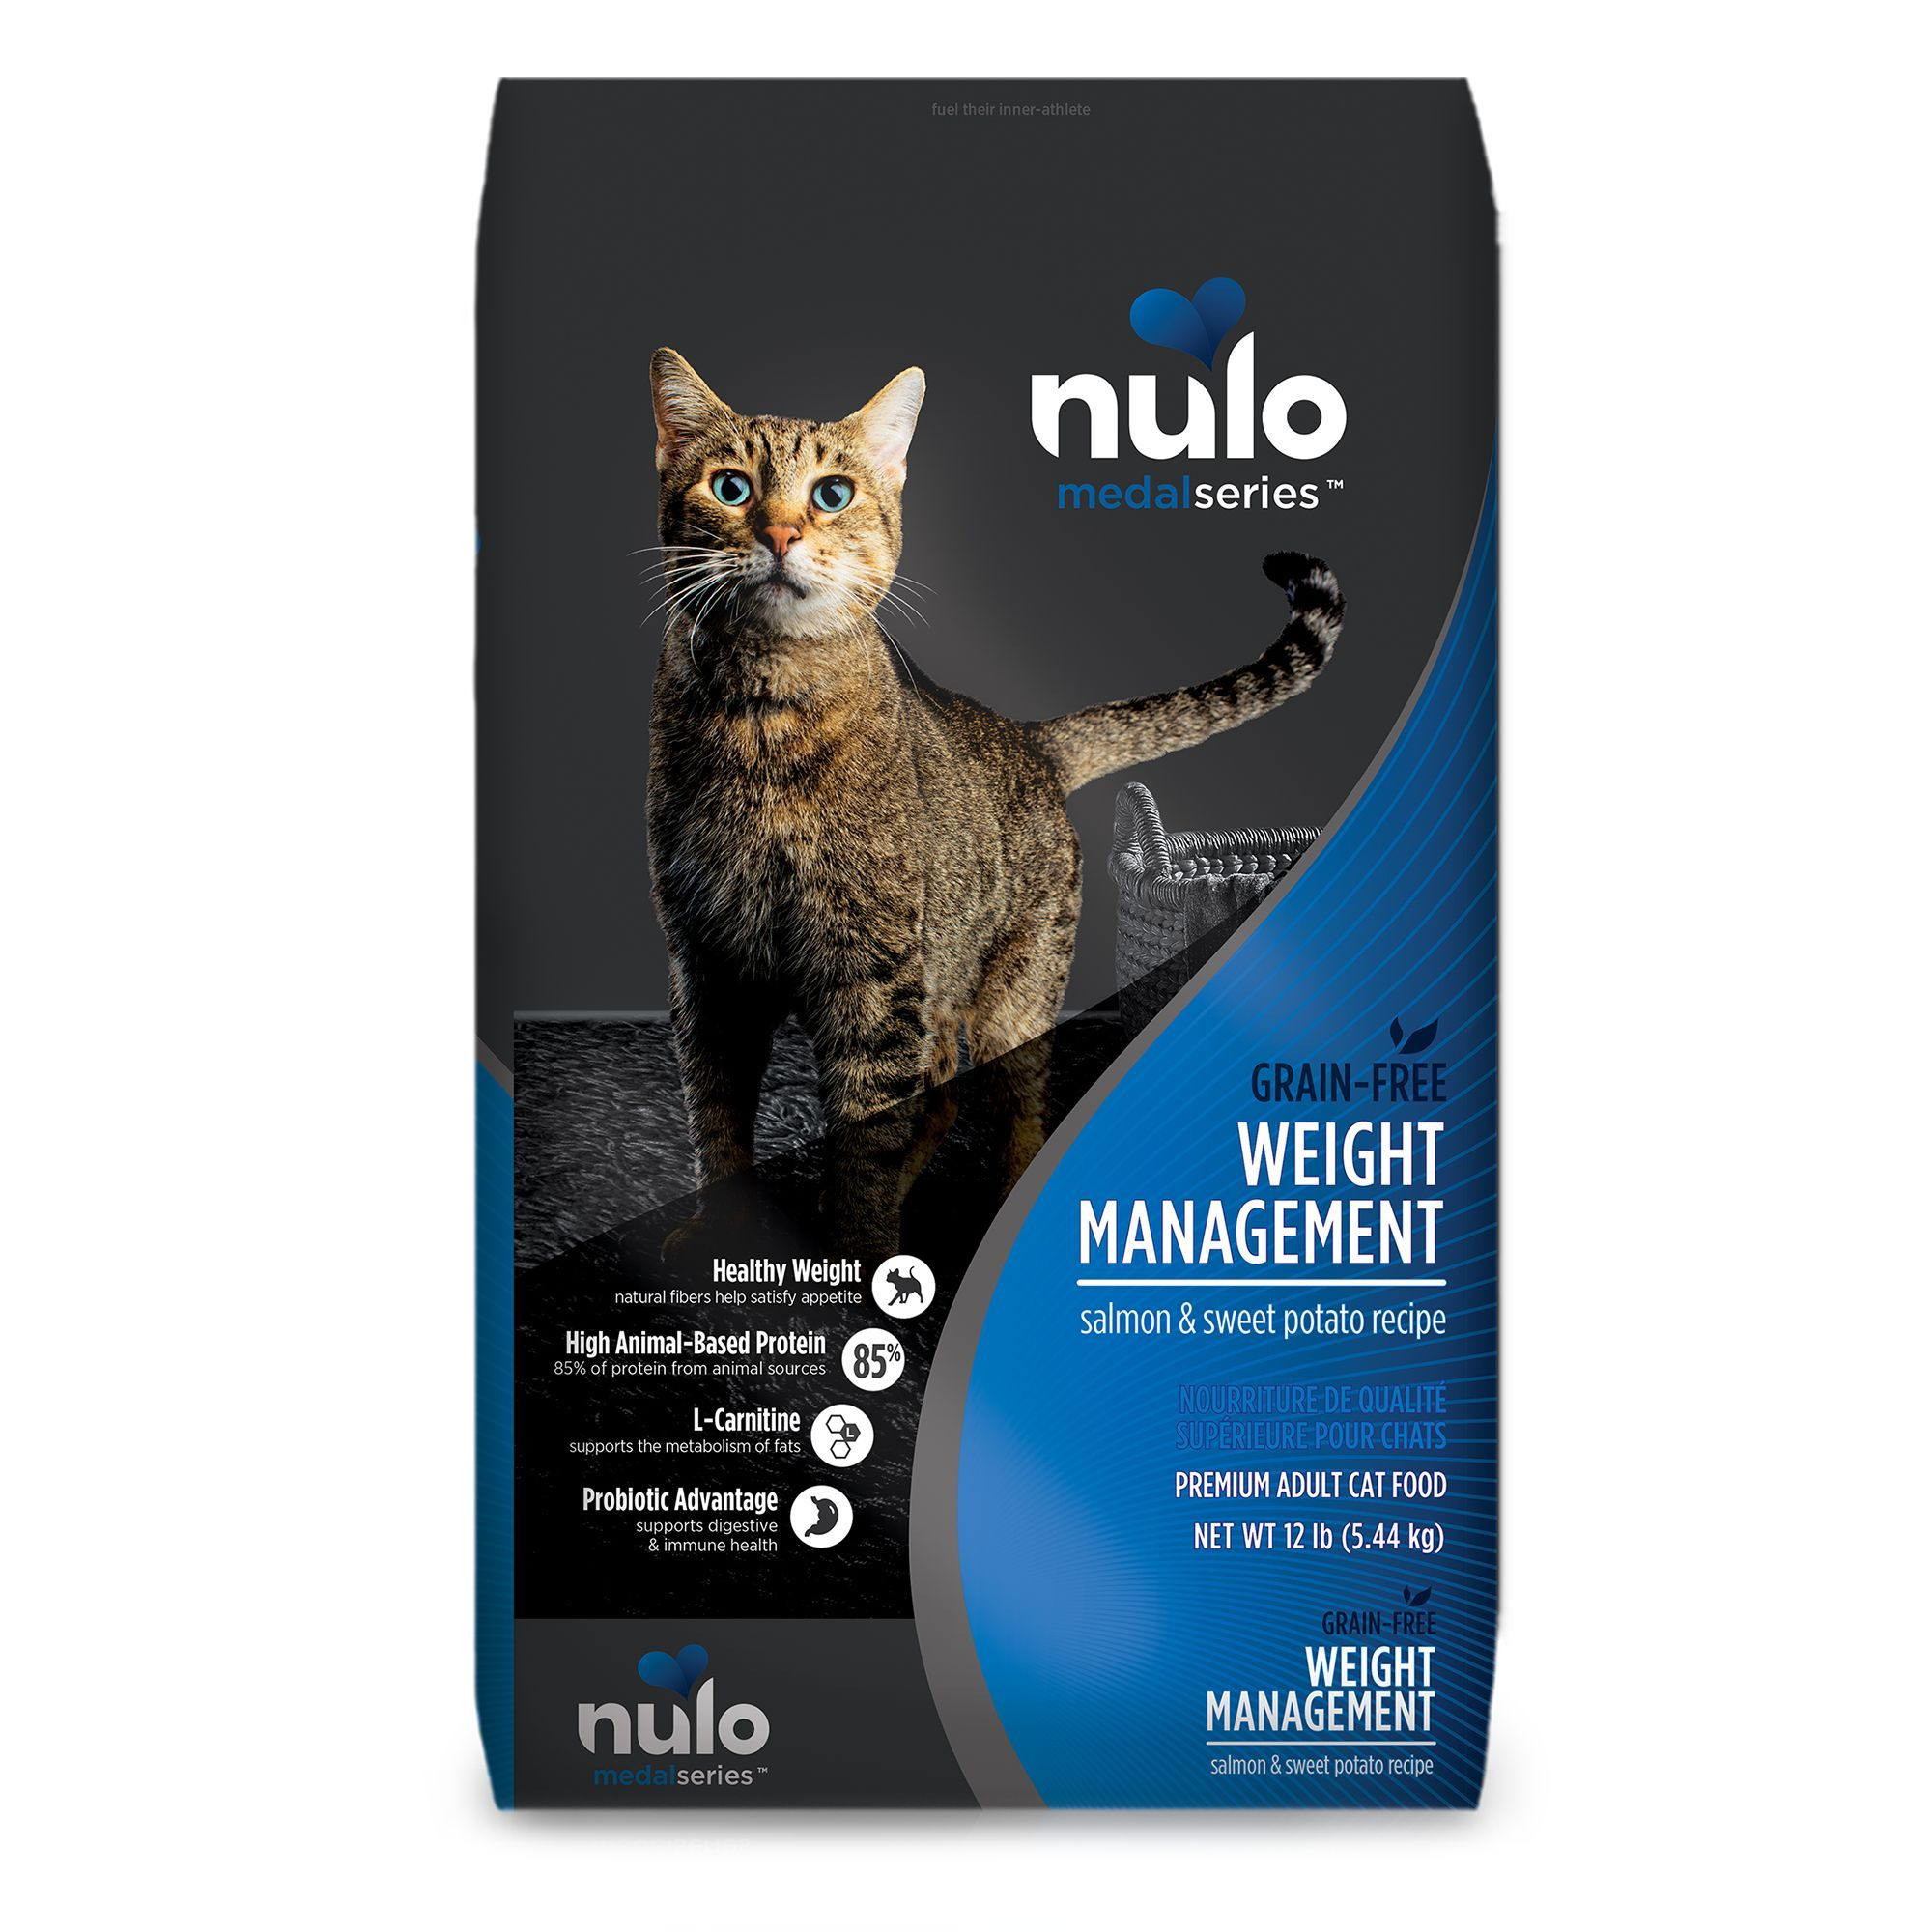 Nulo Medal Series Weight Management Cat Food Grain Free Salmon And Sweet Potato Fermentation Products Grain Foods